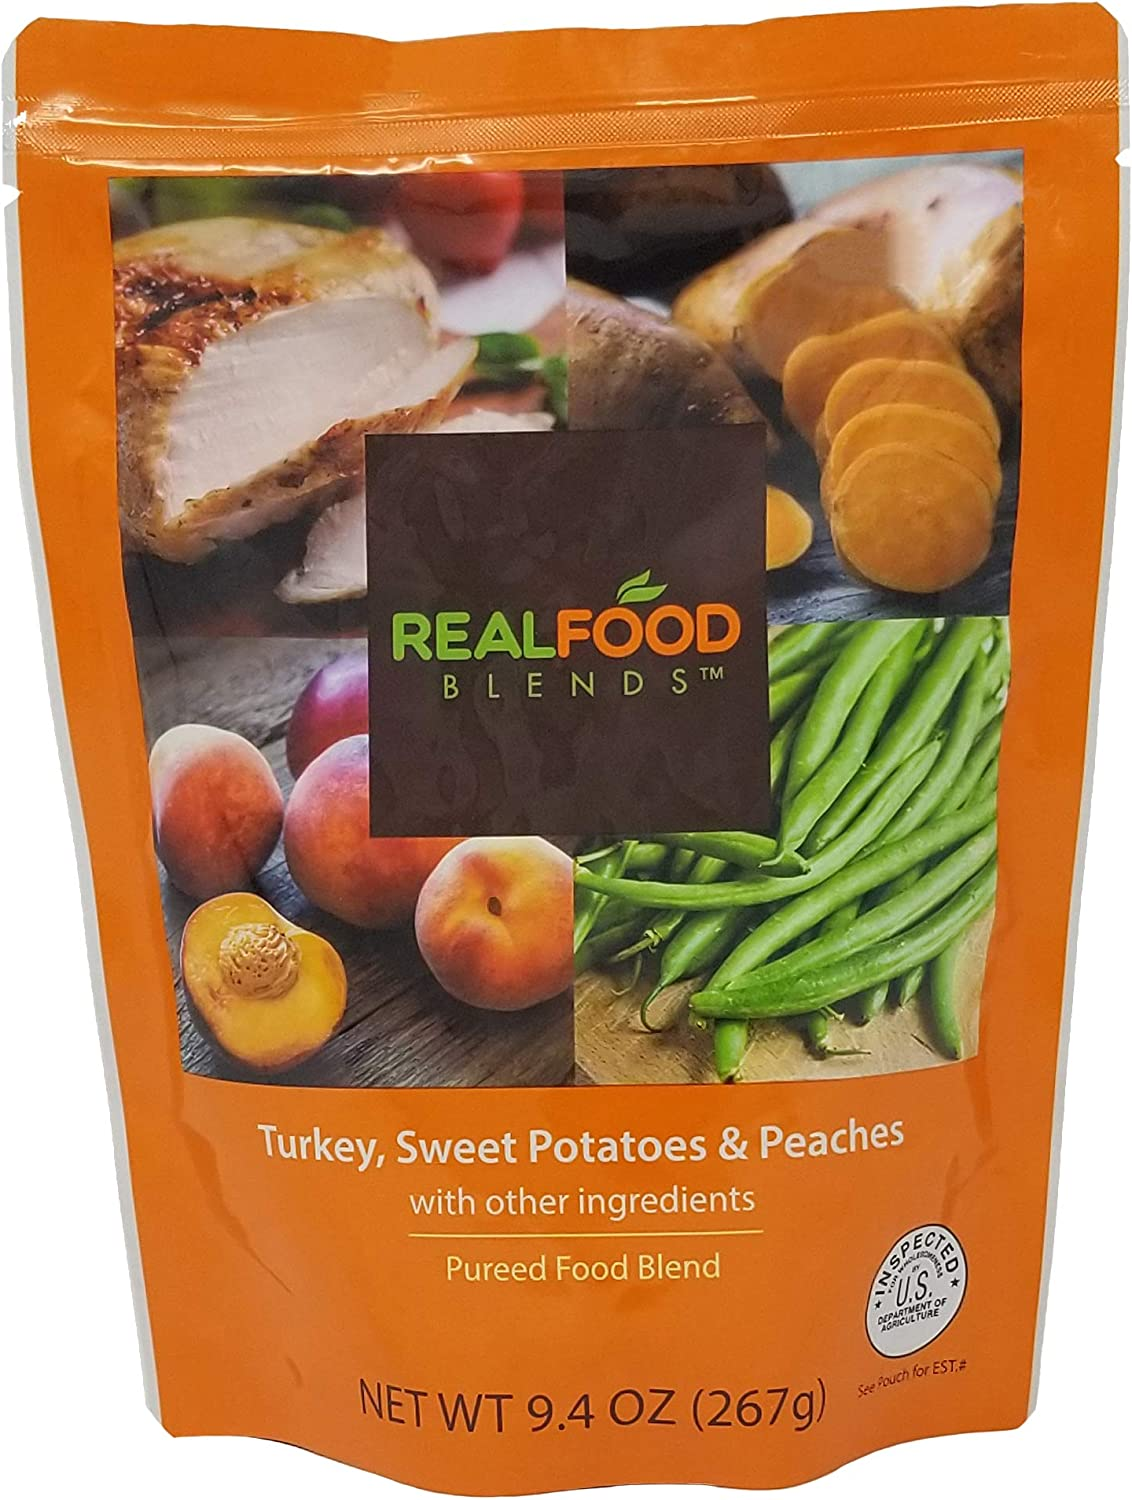 Real Food Blends Turkey, Sweet Potatoes & Peaches Pureed Blended Meal for Feeding Tubes, 9.4 oz Pouch (Pack of 12 Pouches)